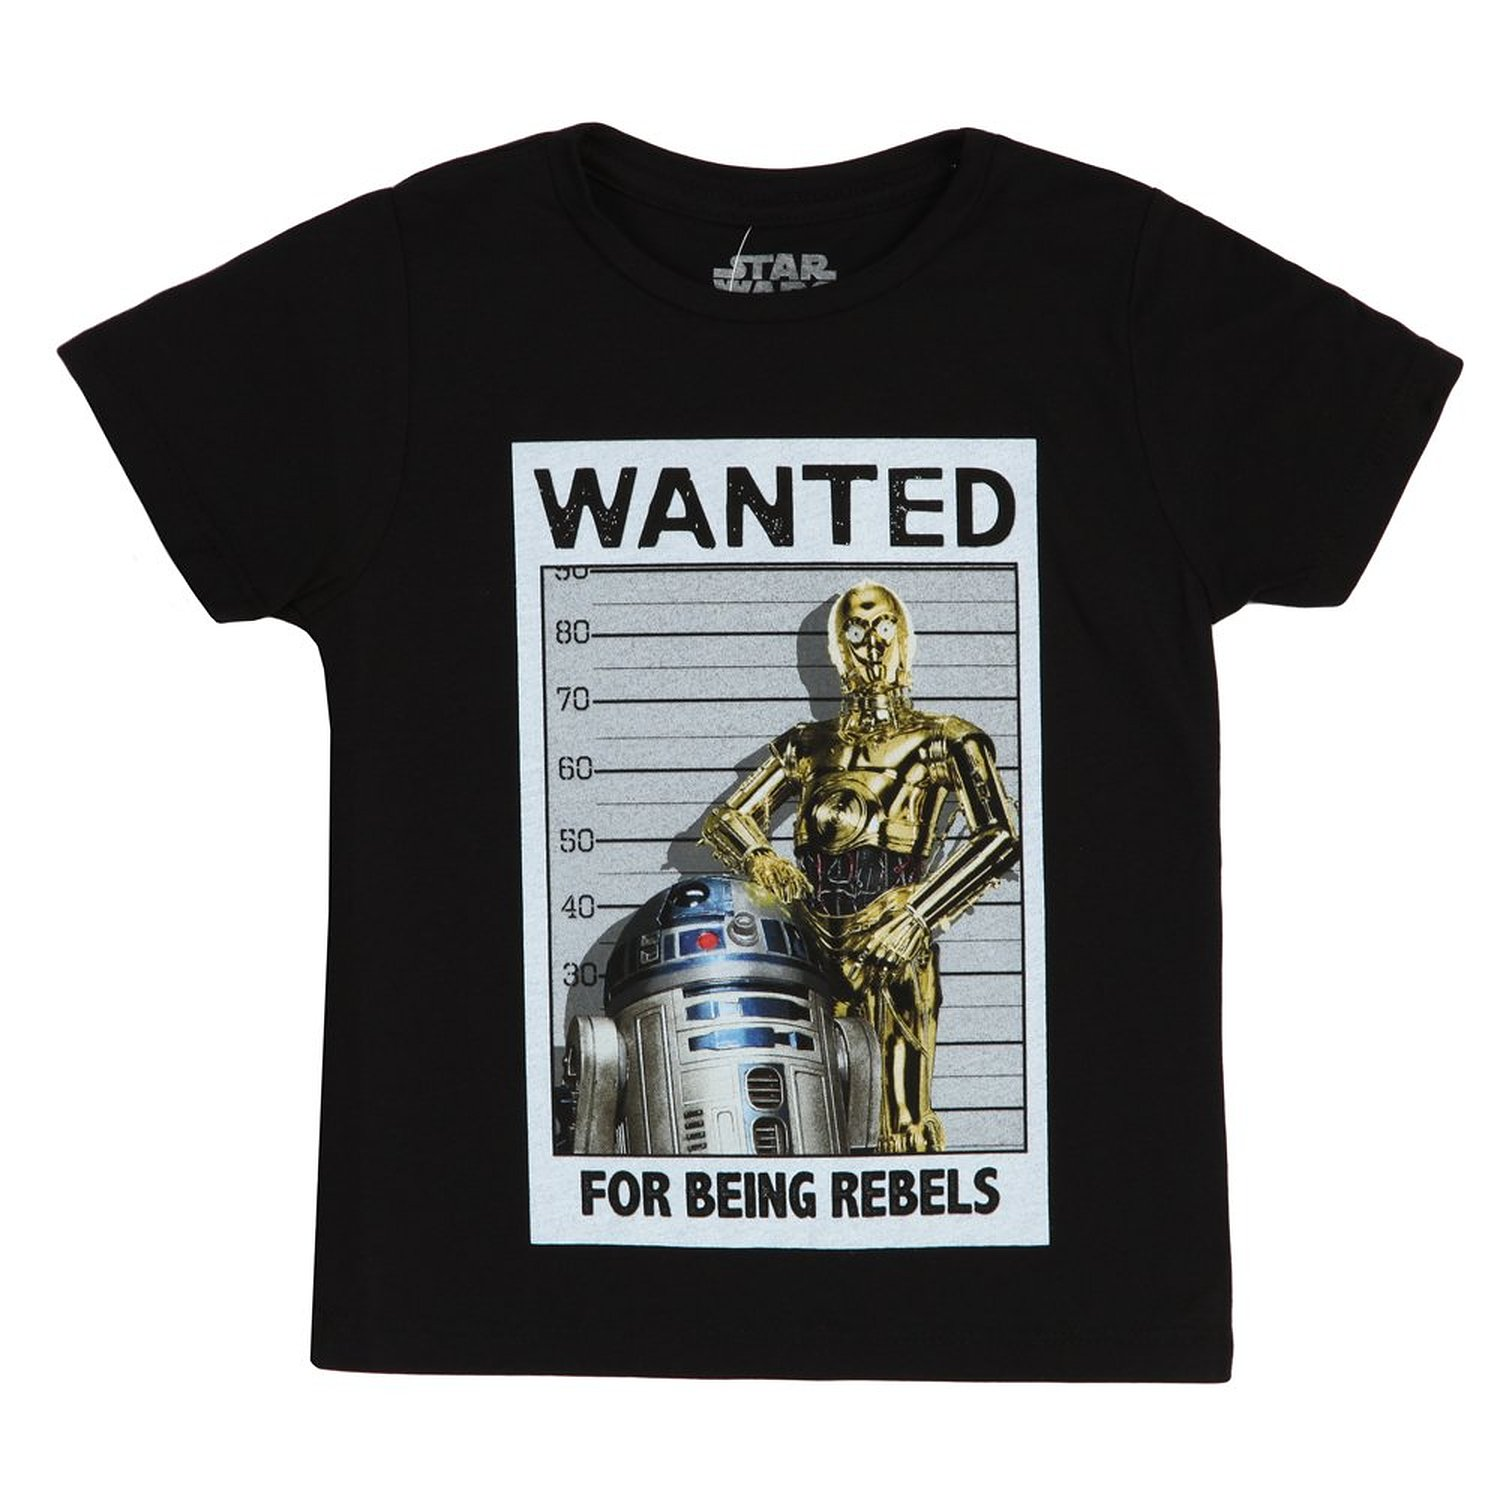 Star Wars Wanted For Being Rebels Juvy Black T-Shirt   6